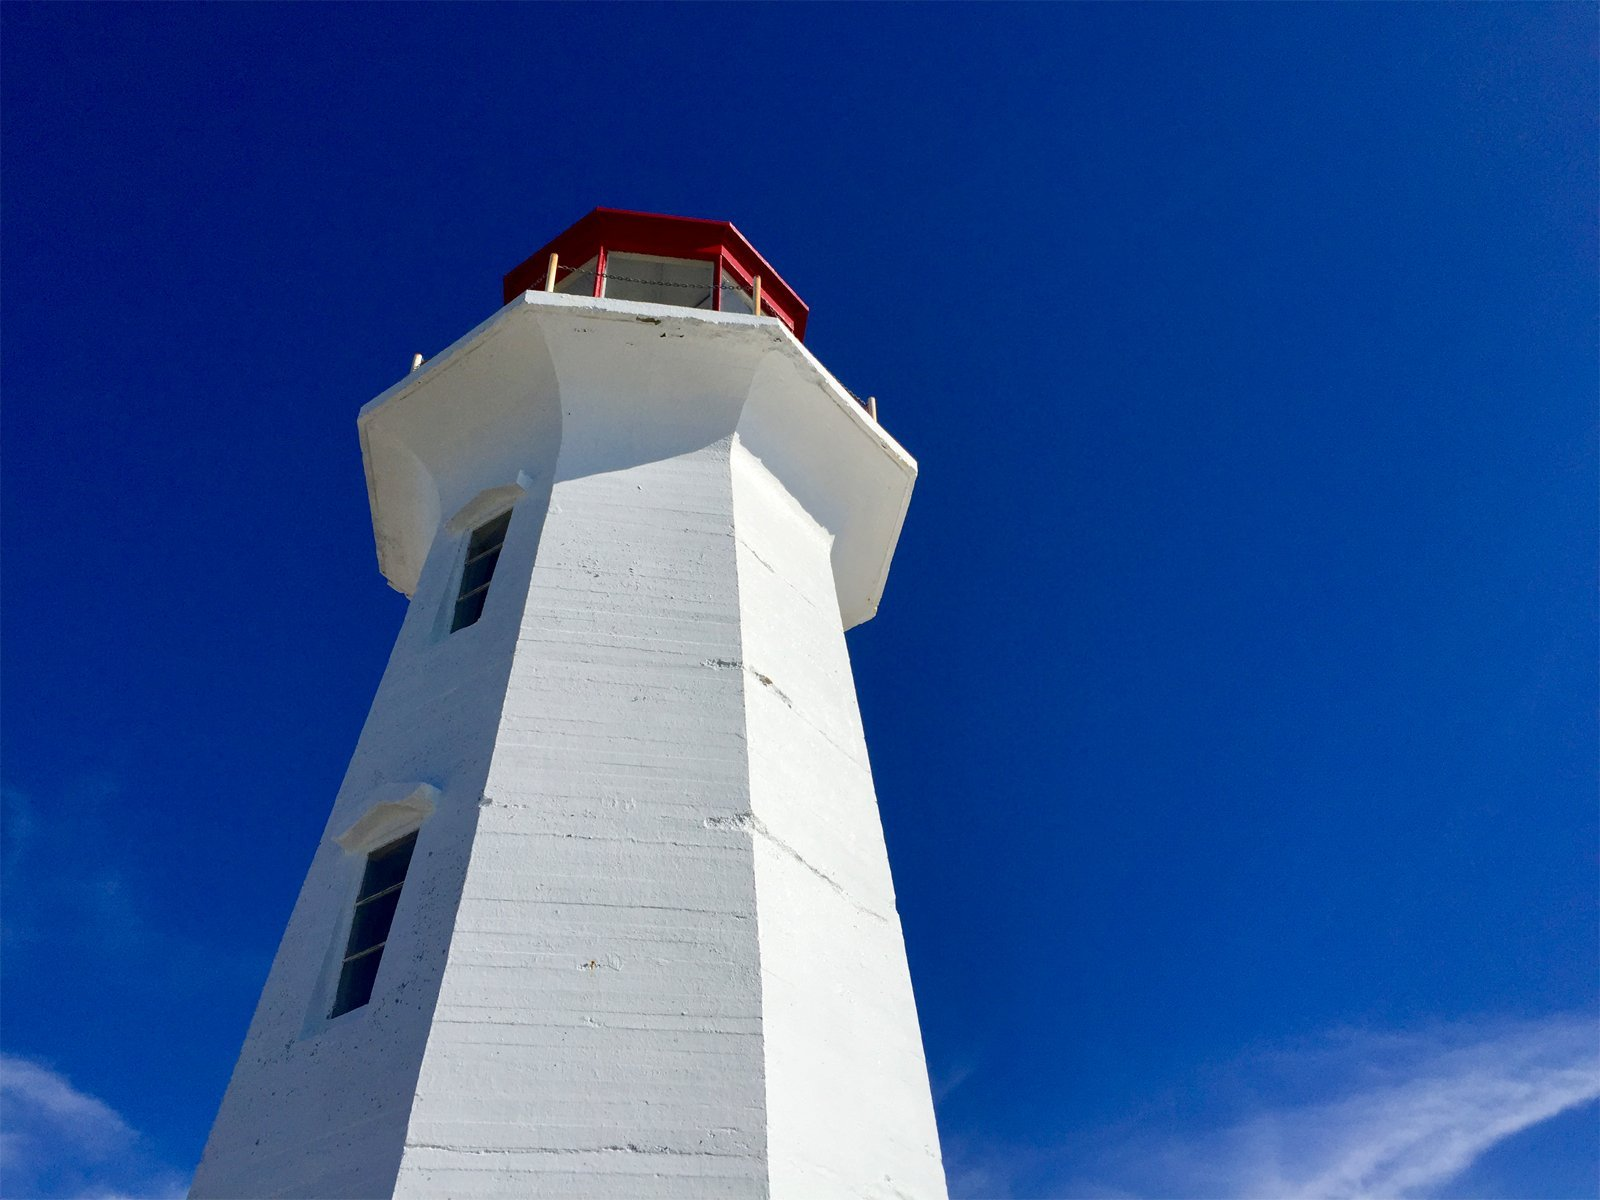 Peggy's Point Lighthouse near Halifax, Nova Scotia